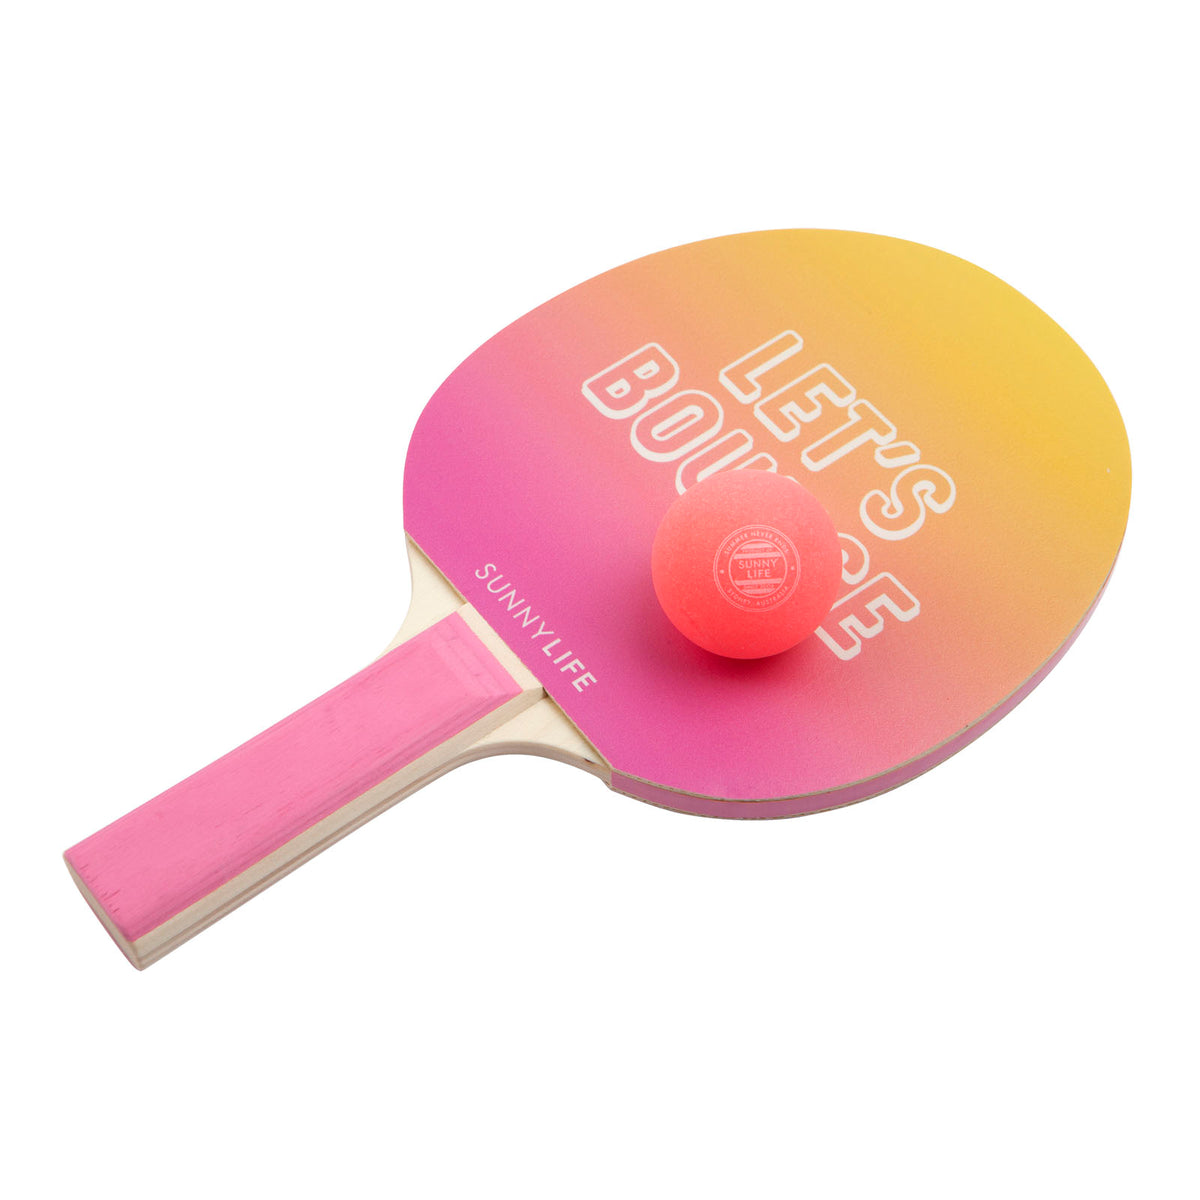 Sunnylife | Ping Pong Play On | Malibu